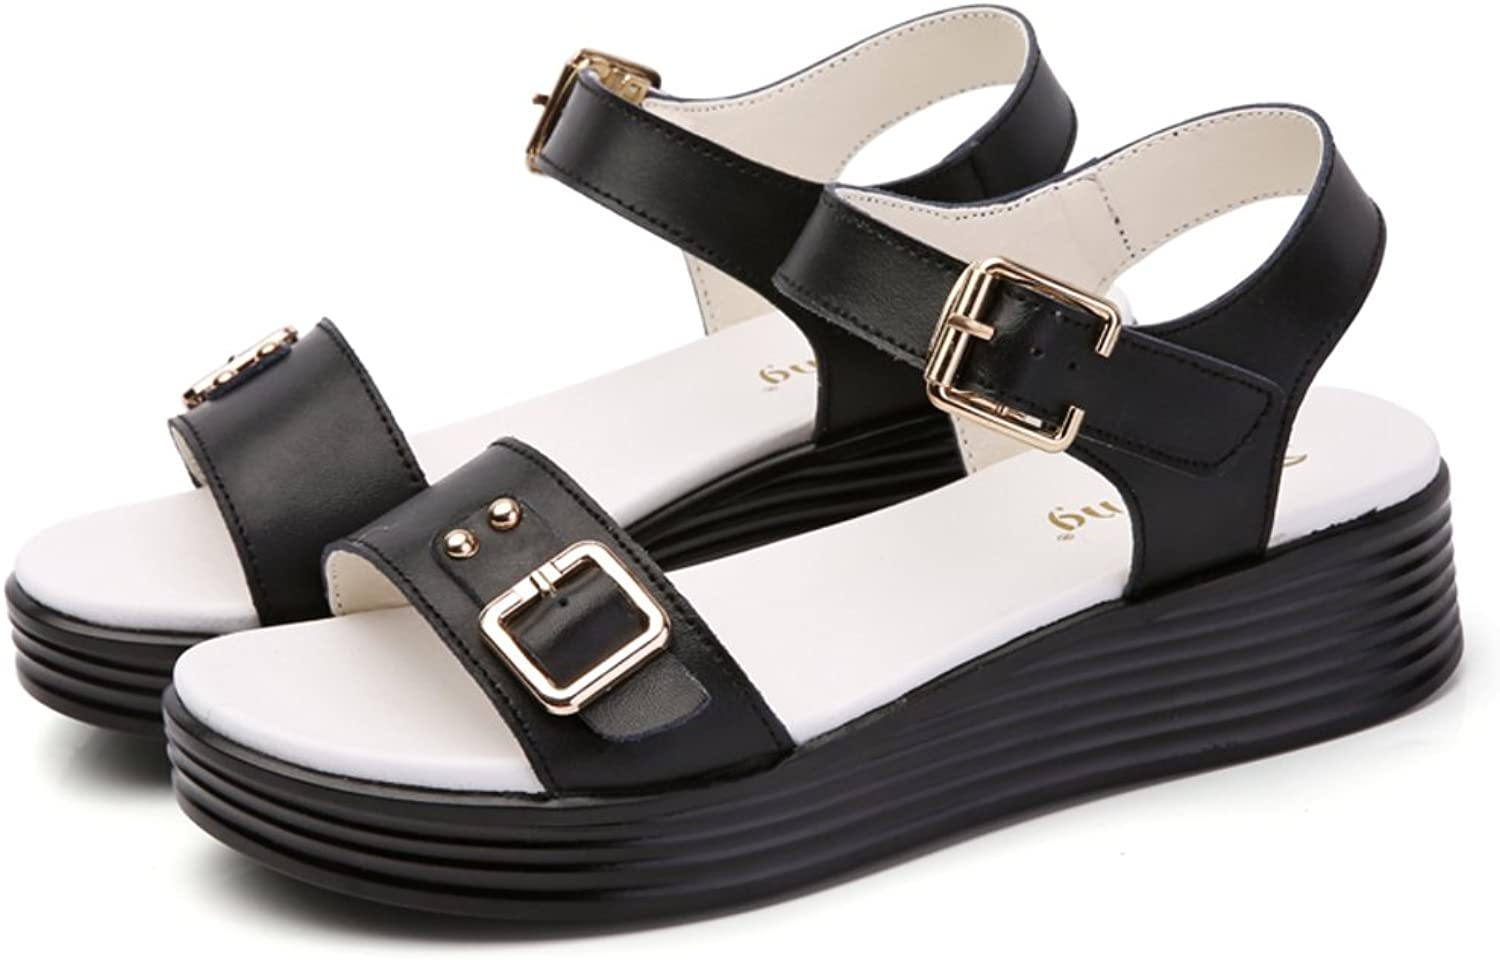 MET RXL Summer,Fashion,Casual shoes Lady,Simple,Thick-Soled Sandals